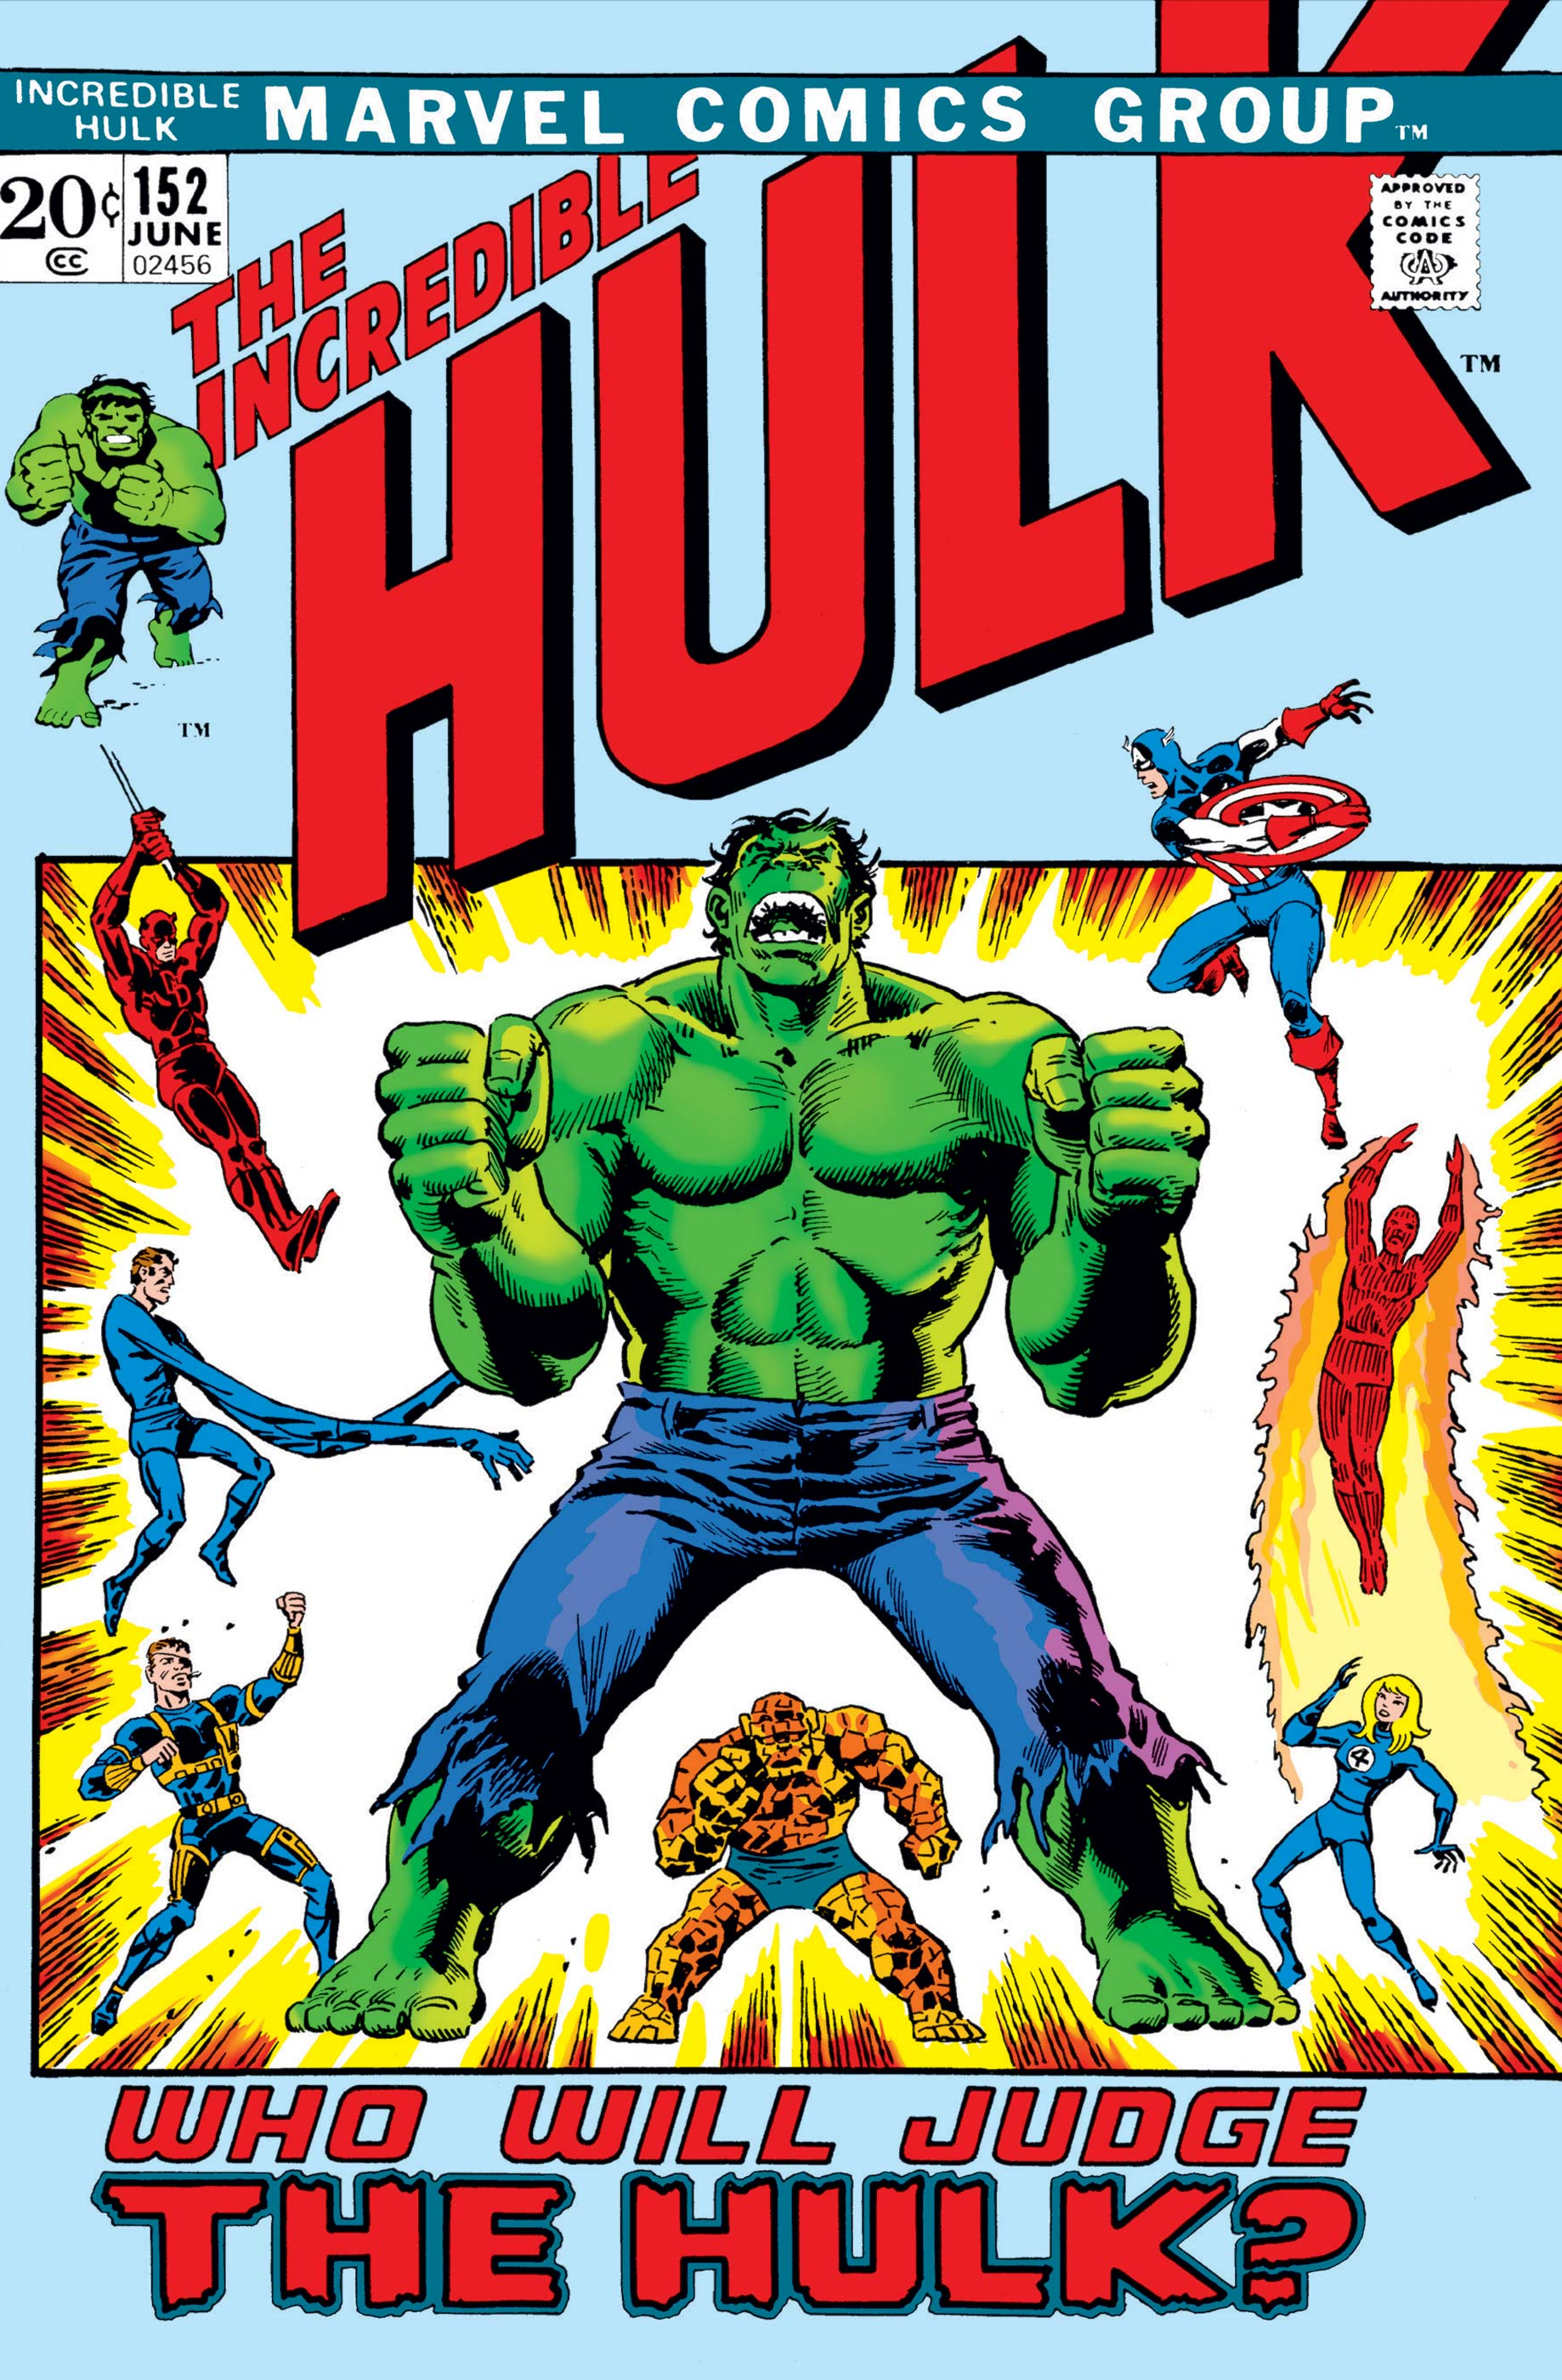 Incredible Hulk (1962) #152